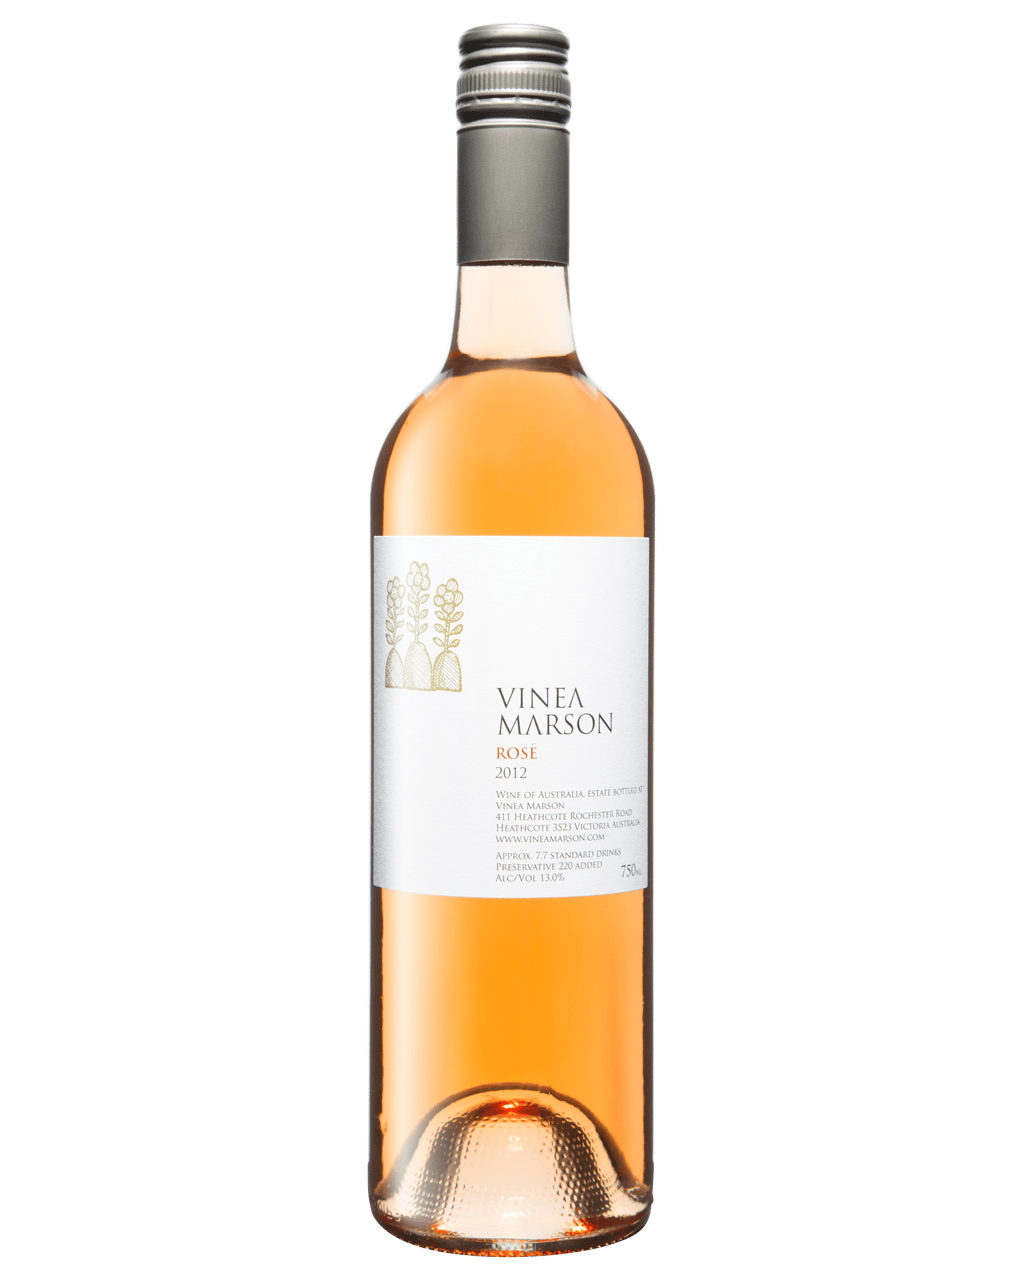 vinea marson rose 2012 dan murphy s buy wine champagne beer